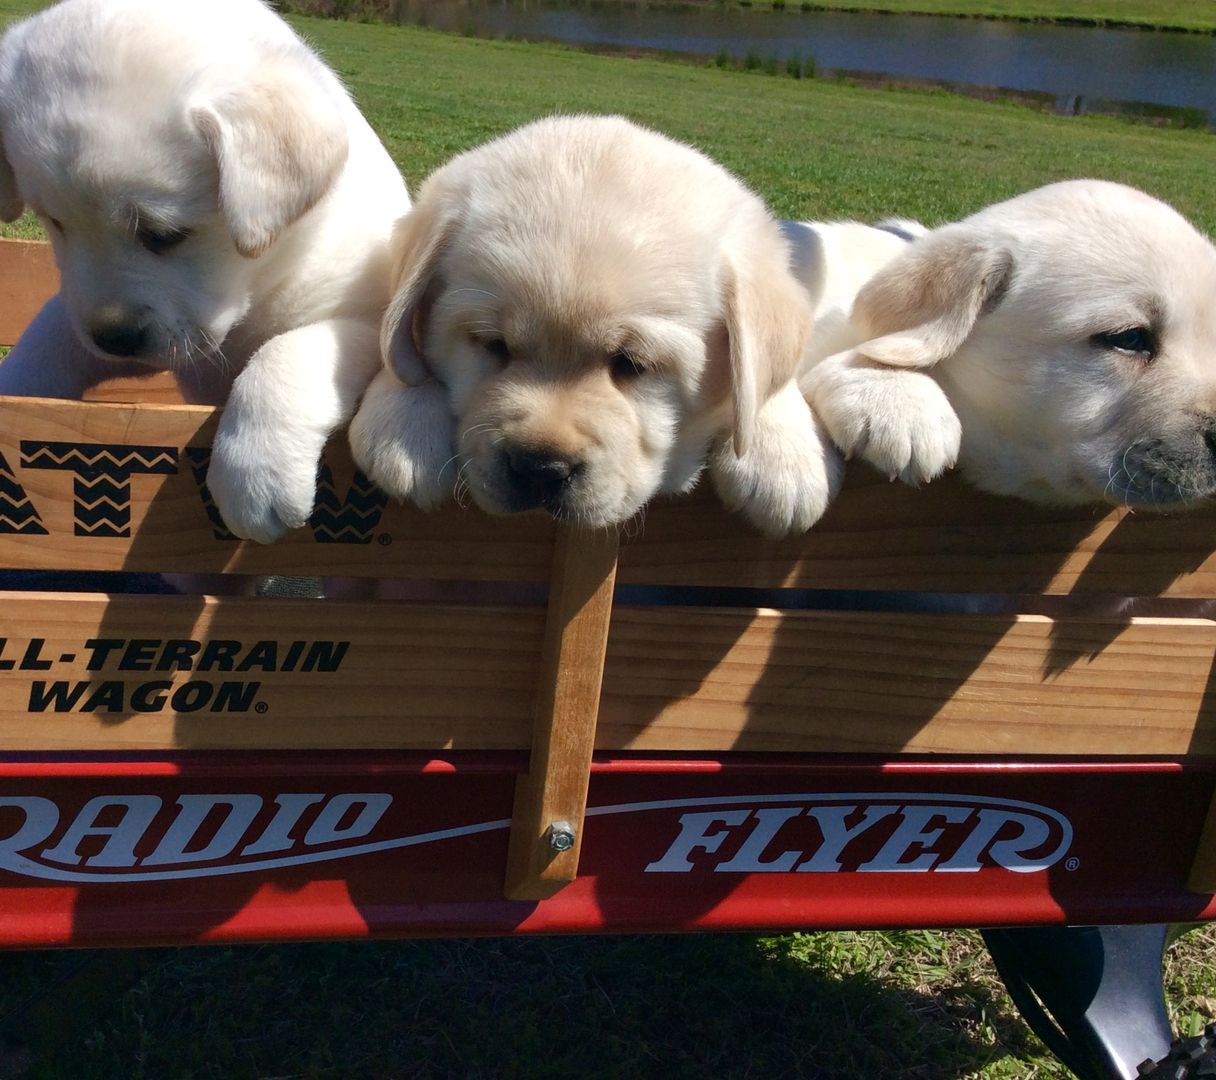 North Carolina Labrador Puppies For Sale Centrally Located In Thomasville North Carolina Minutes Away From Greensboro High Point Wi Labrador Puppies For Sale Lab Puppies Puppies